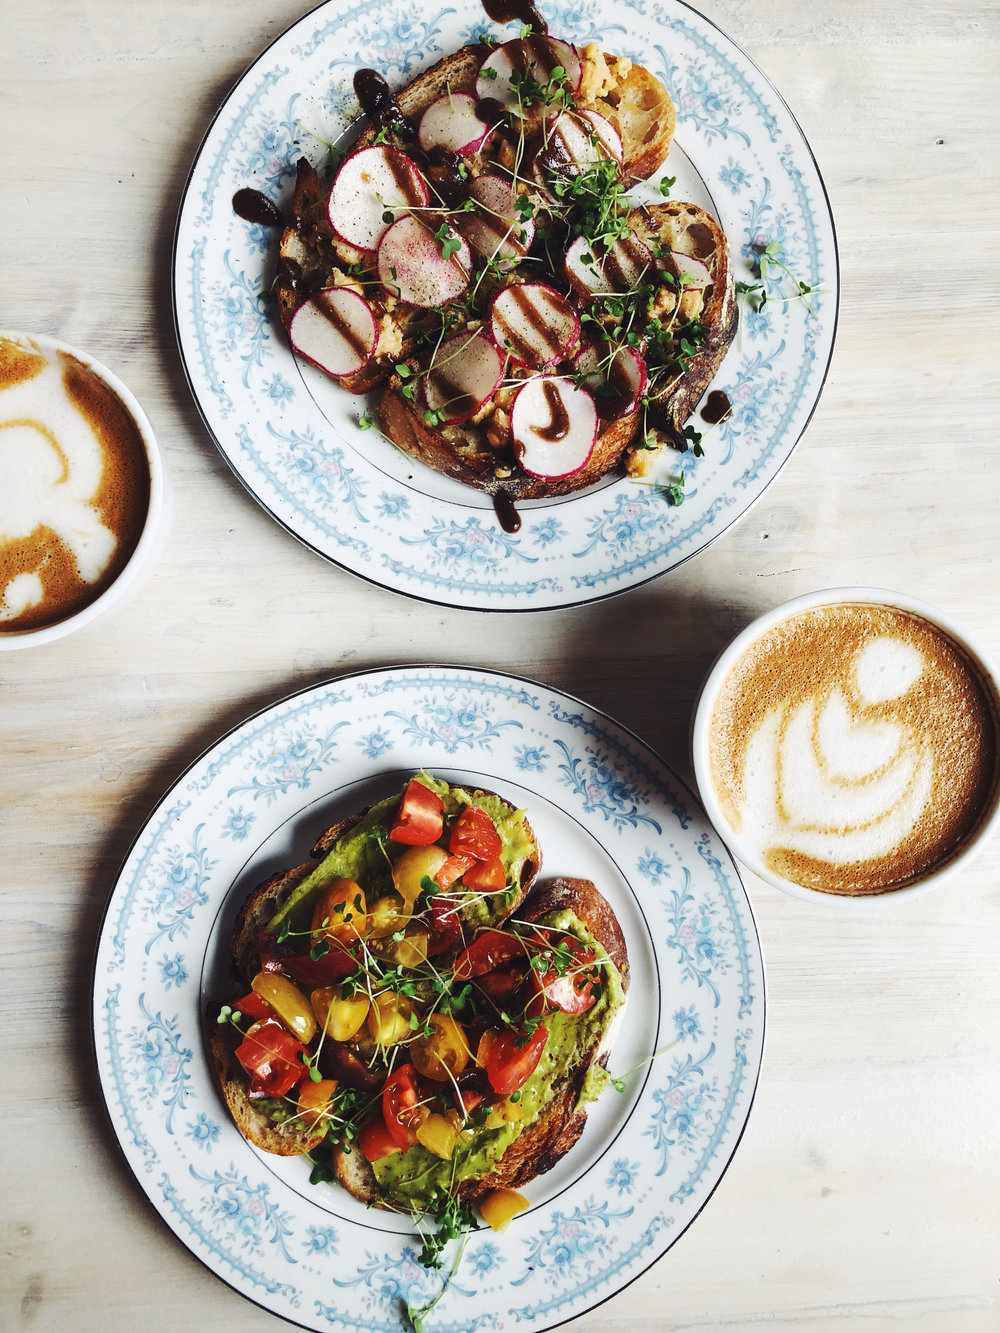 CHICKPEA TOAST | AVOCADO TOAST | ALMOND MILK MINT LATTES - FIDDLEHEAD FERN